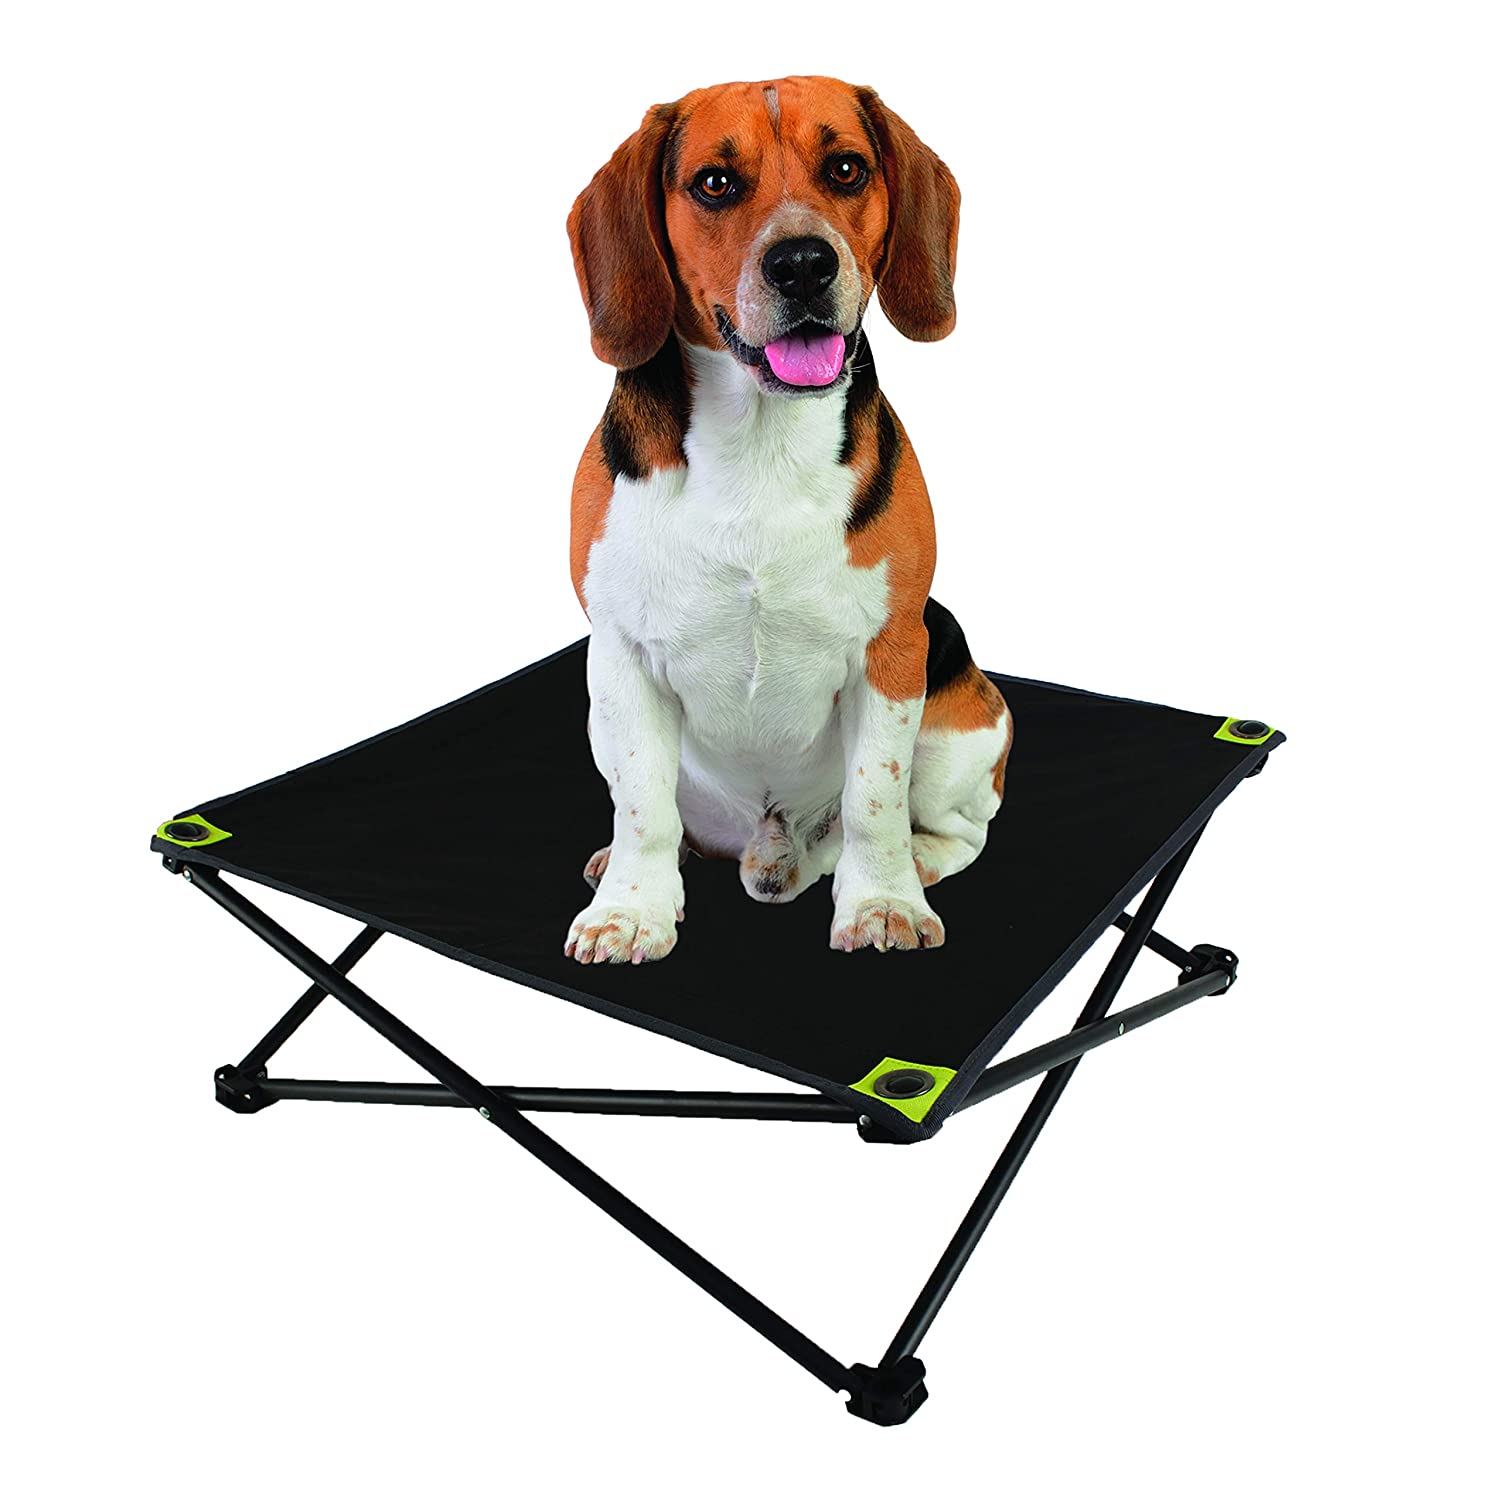 Hyper Pet Elevated Pet Bed For Small, Medium & Large Dogs